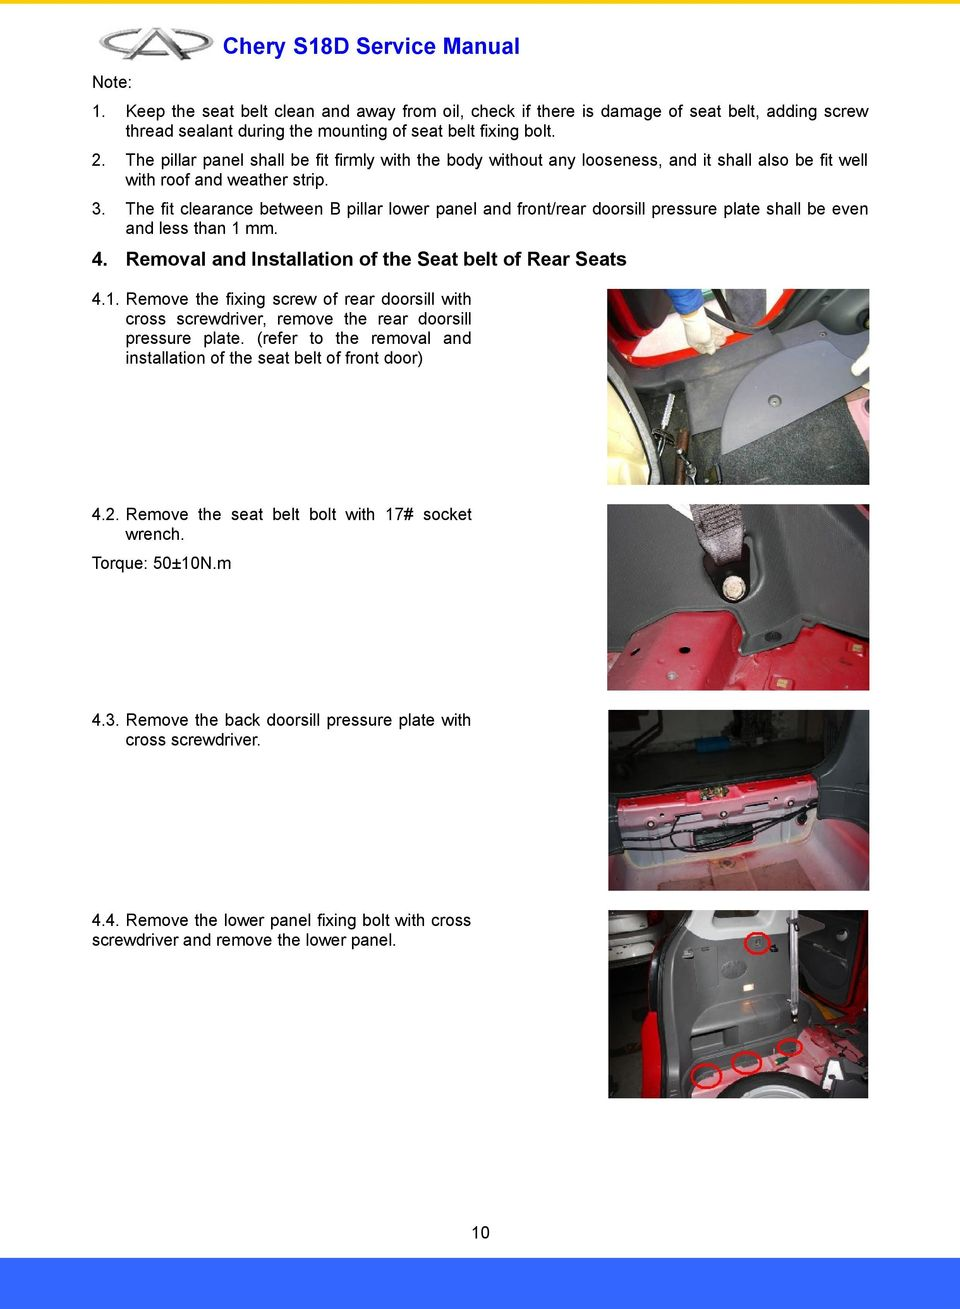 The fit clearance between B pillar lower panel and front/rear doorsill pressure plate shall be even and less than 1